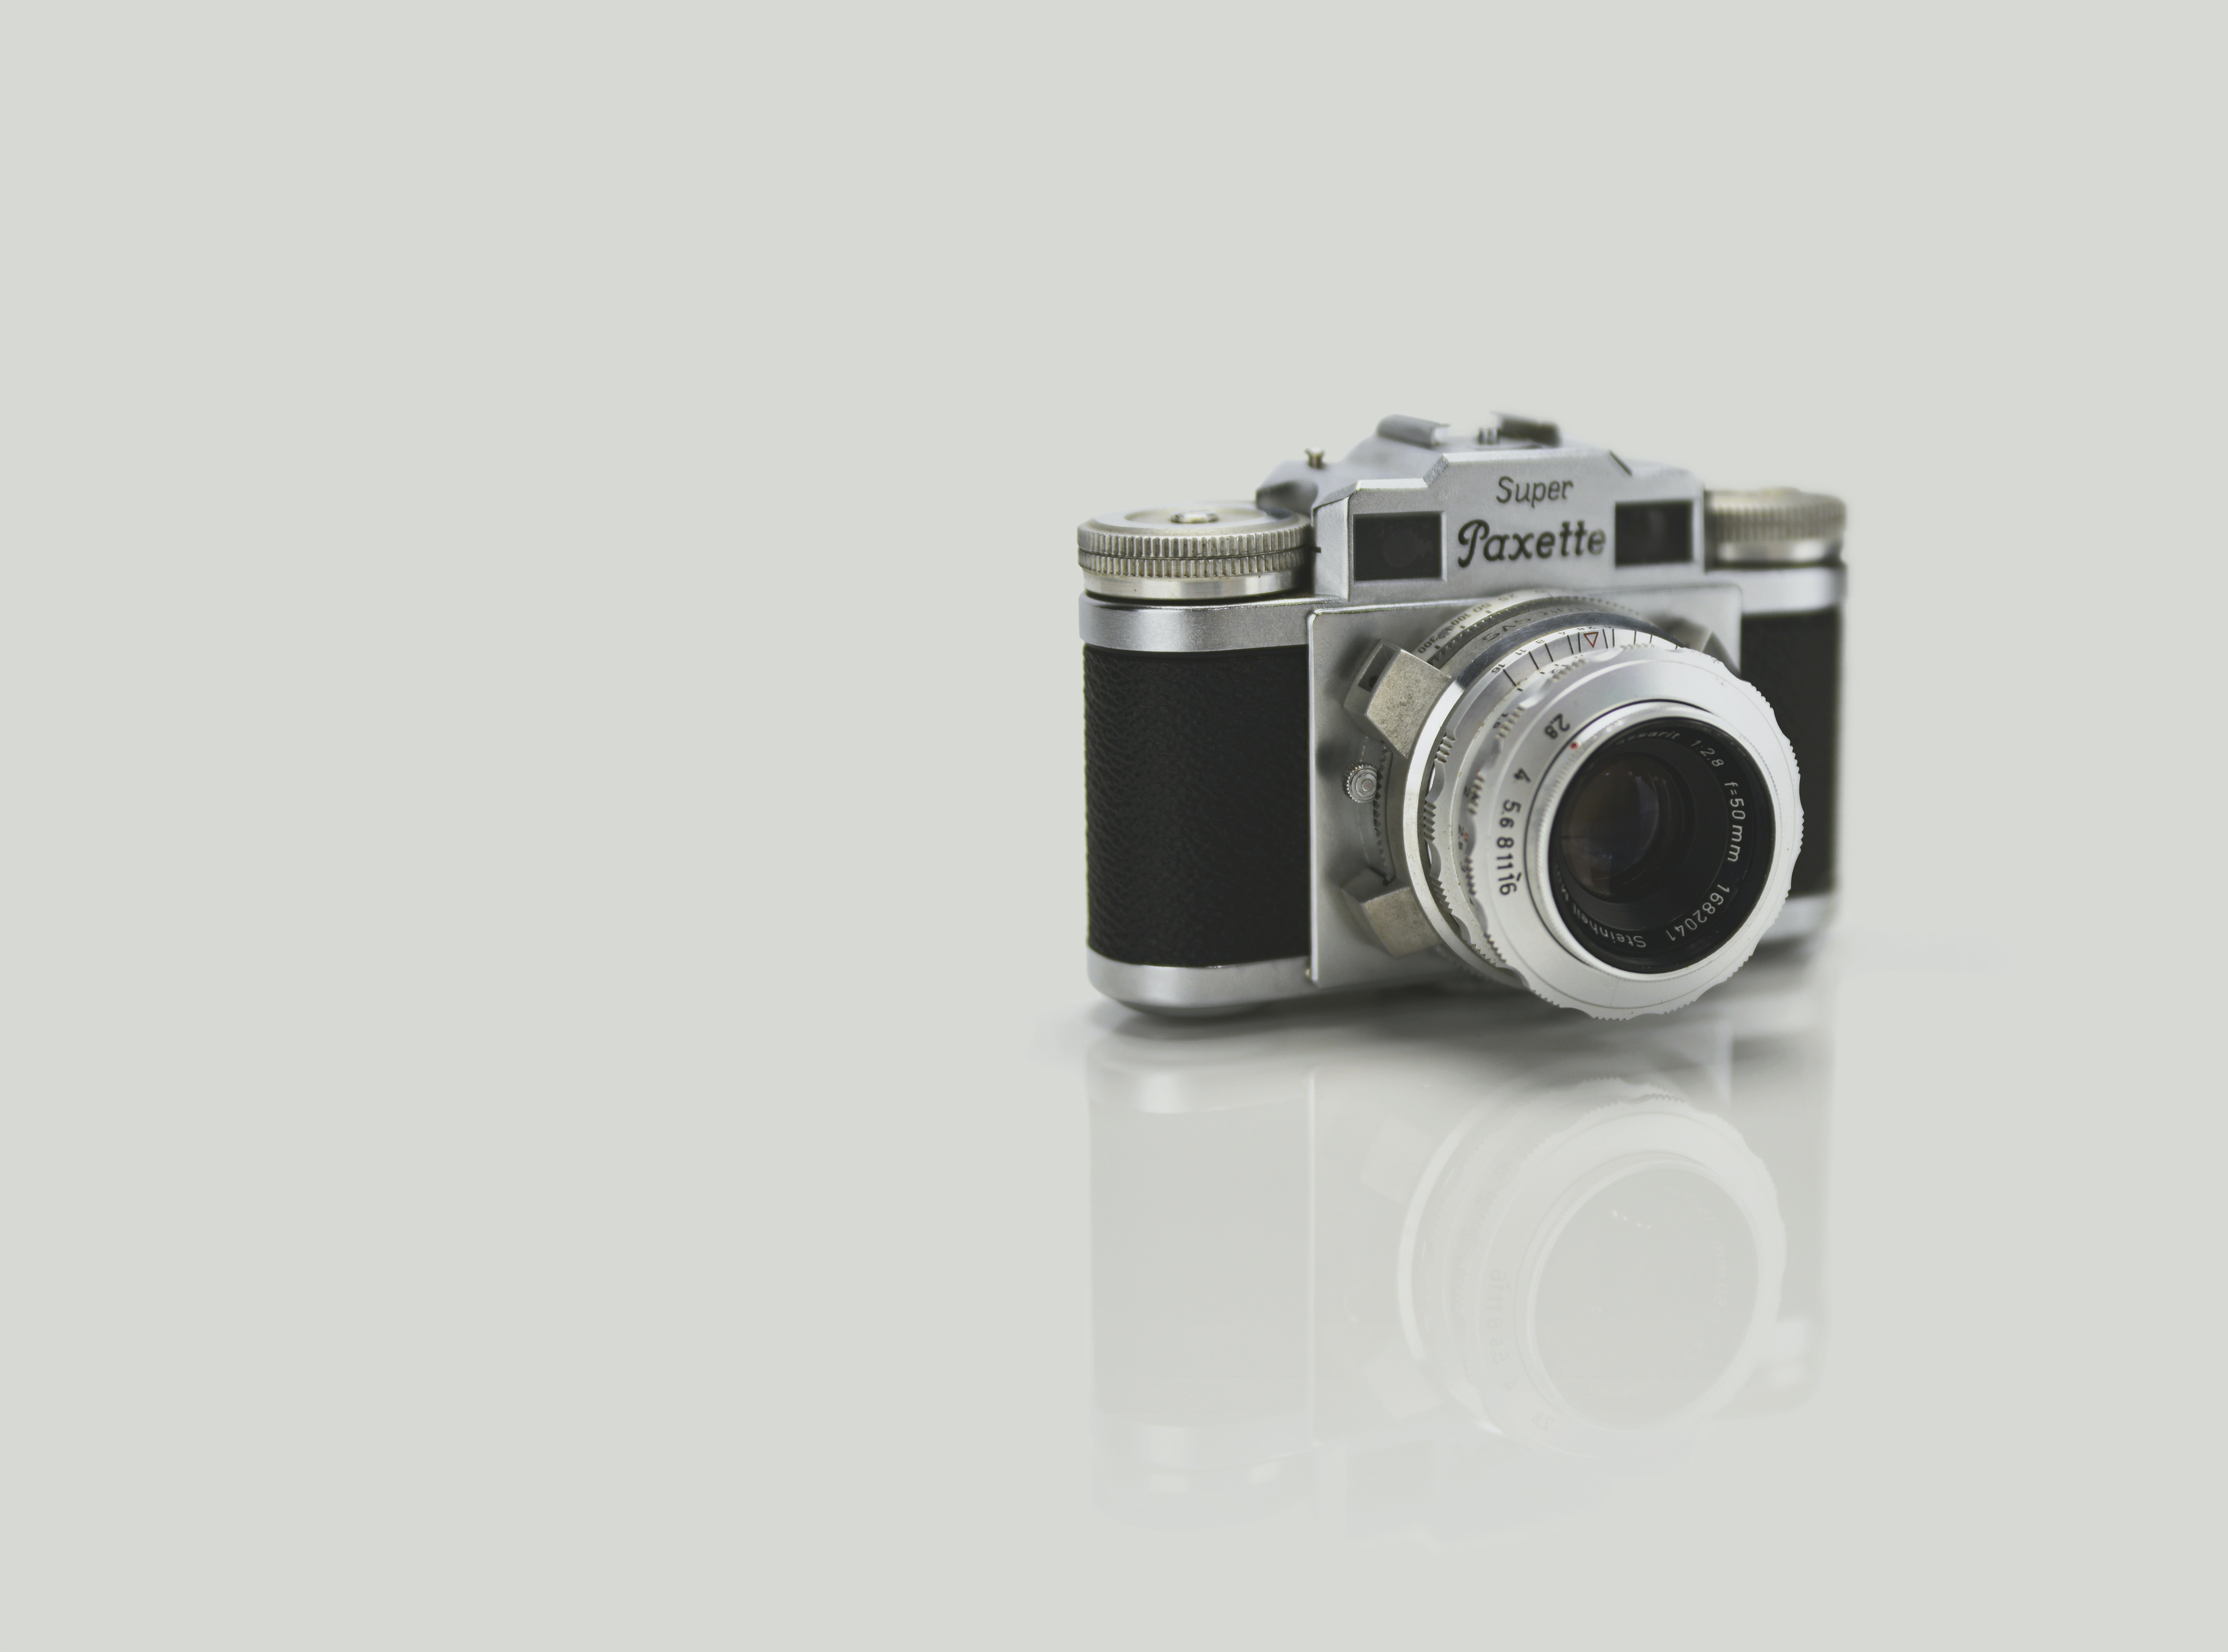 gray and black Super Paxette point-and-shoot camera